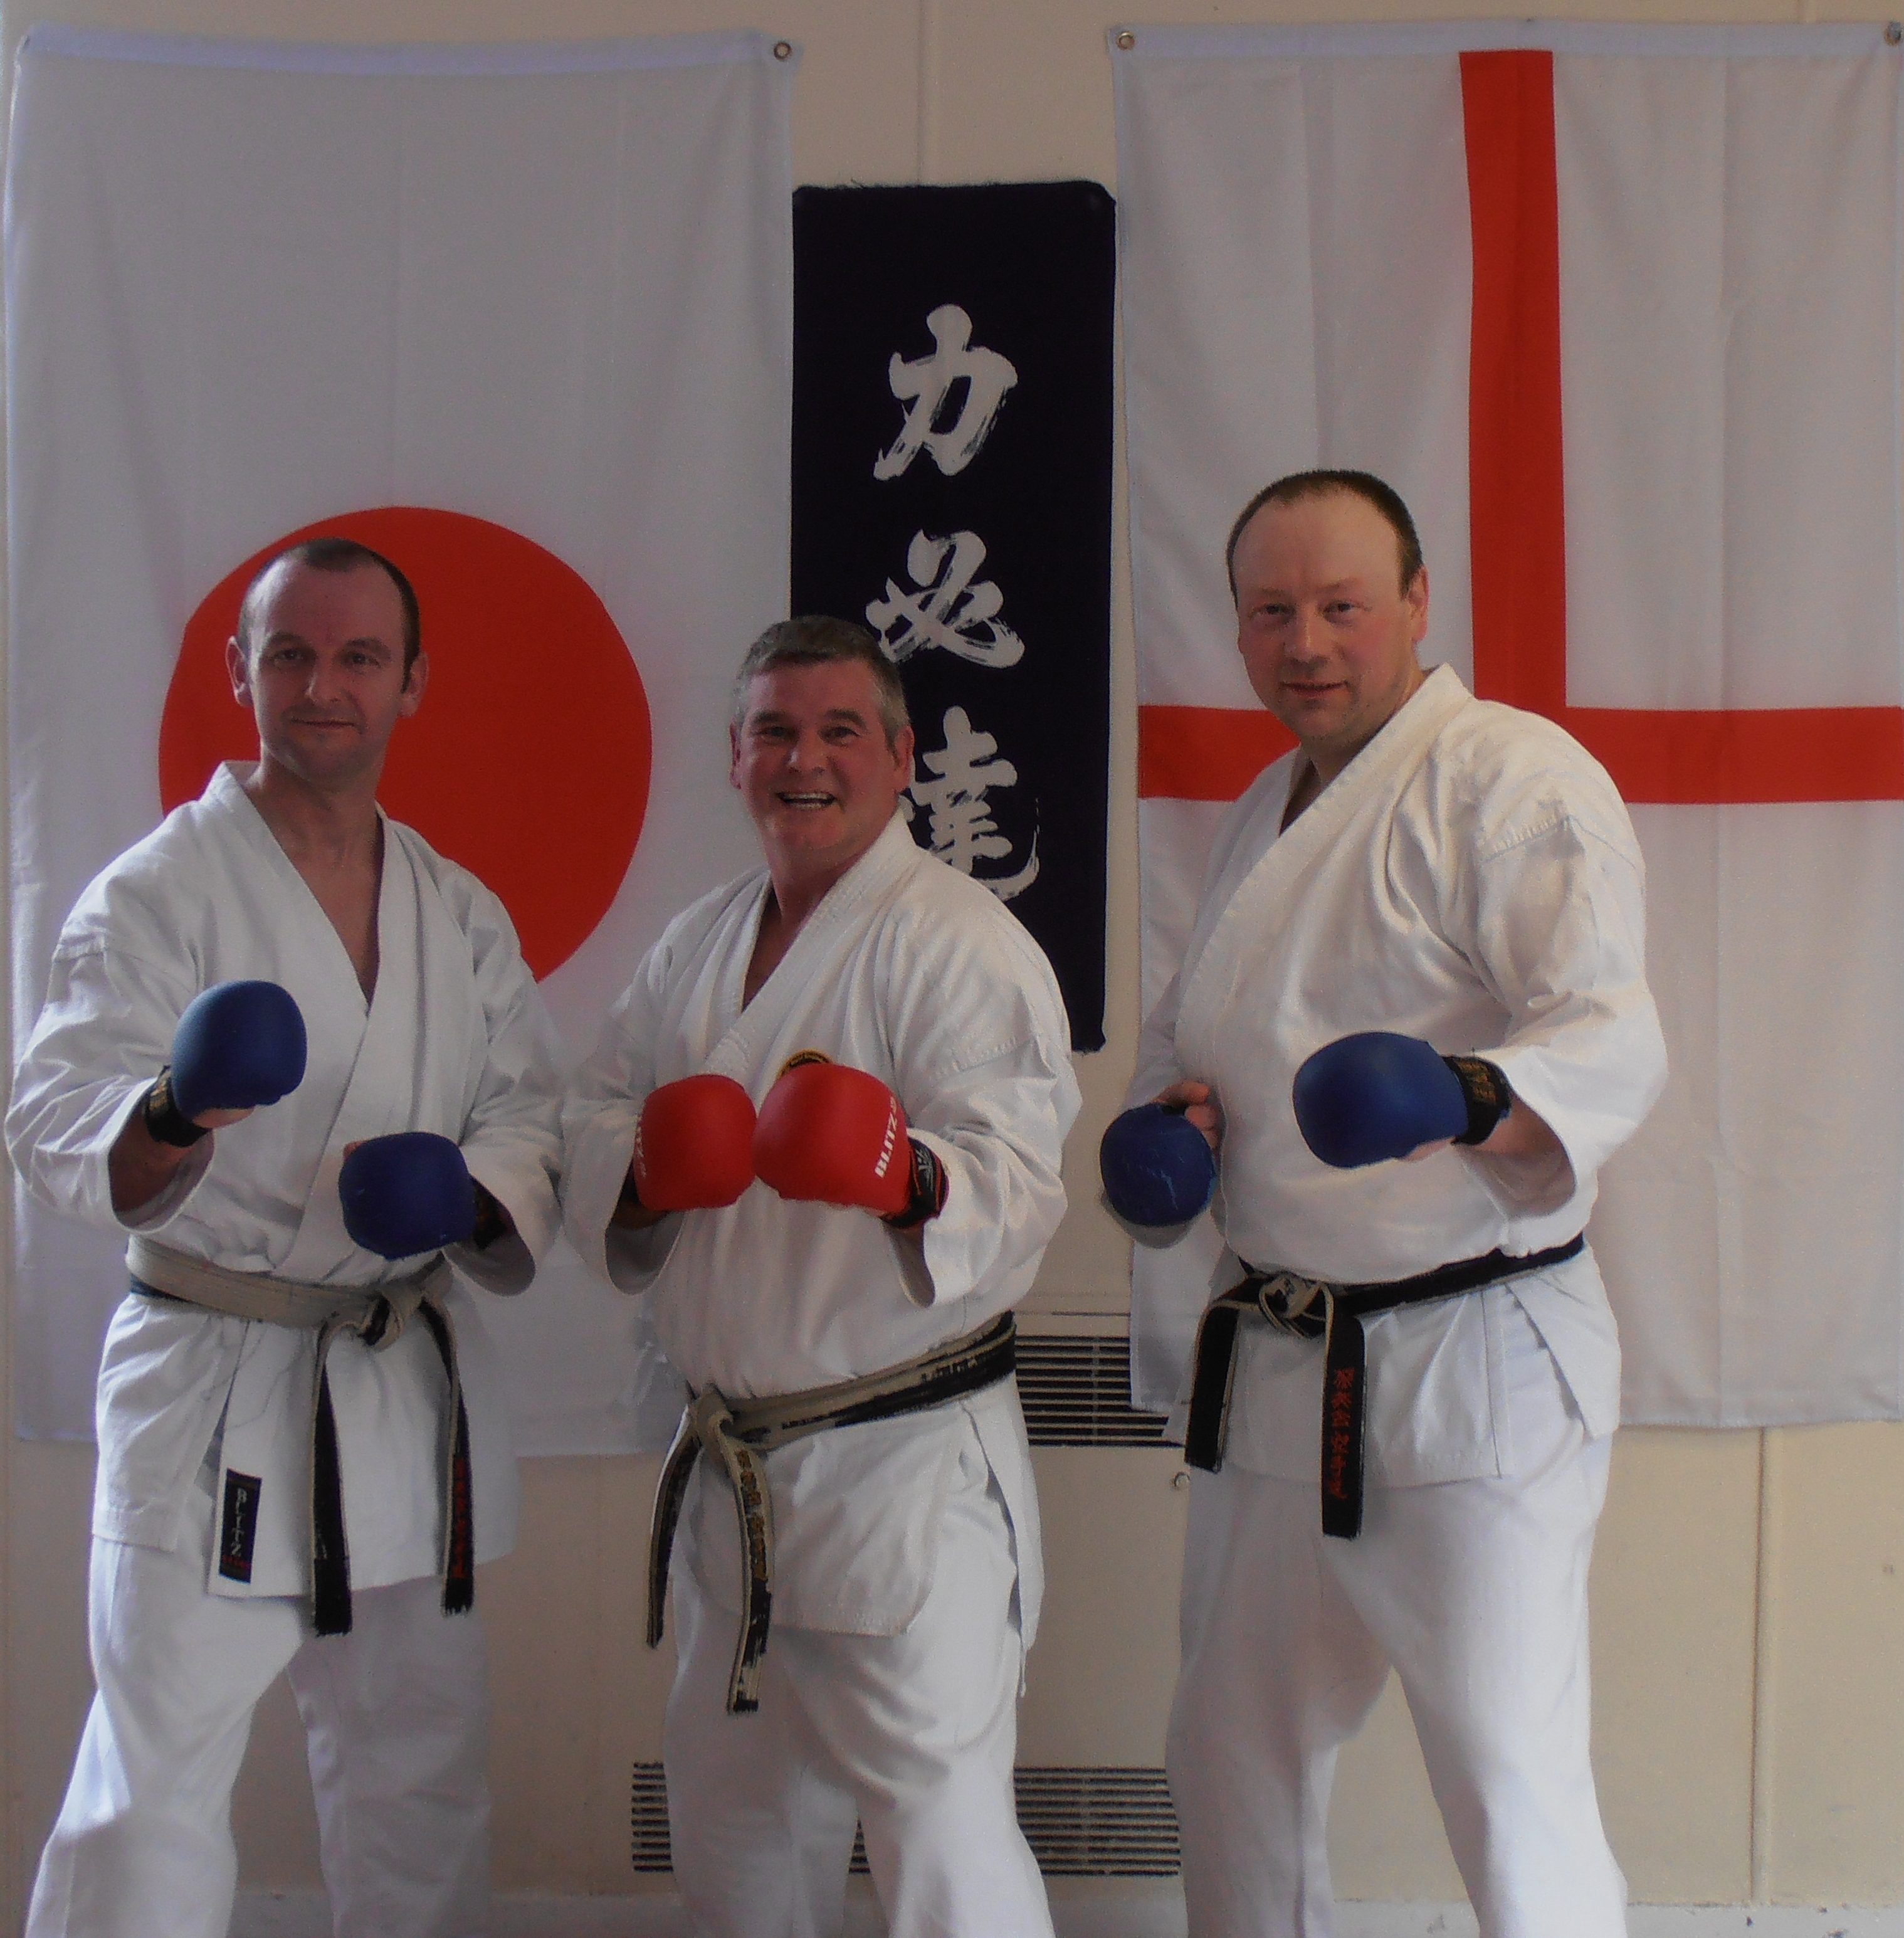 Anthony Slack & Paul Wareing Pitured with Shihan Kevin Barlow